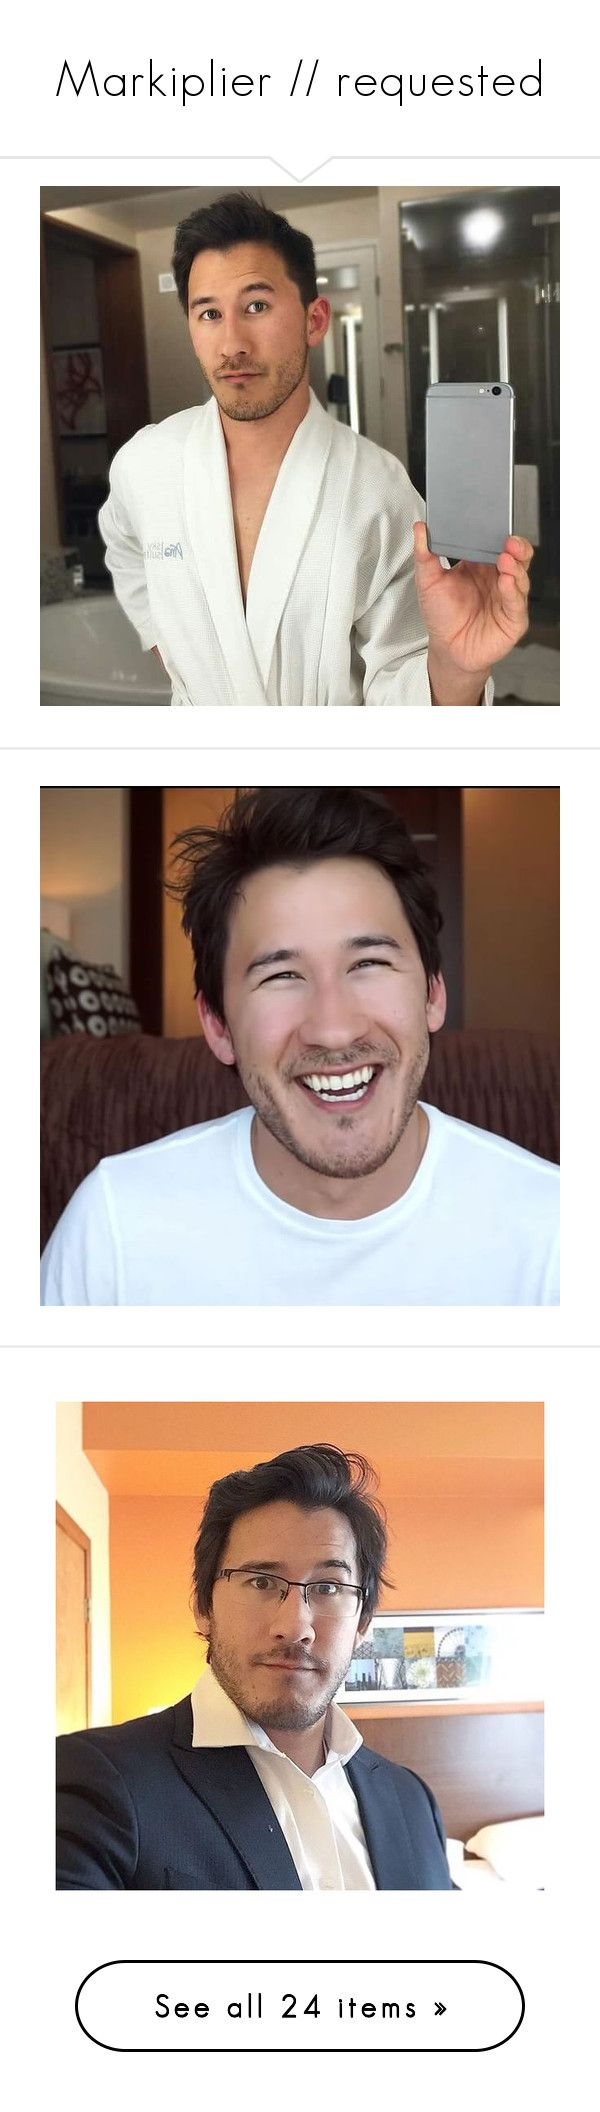 """""""Markiplier // requested"""" by waliflower ❤ liked on Polyvore featuring markiplier, youtubers, boys, youtube and septiplier"""